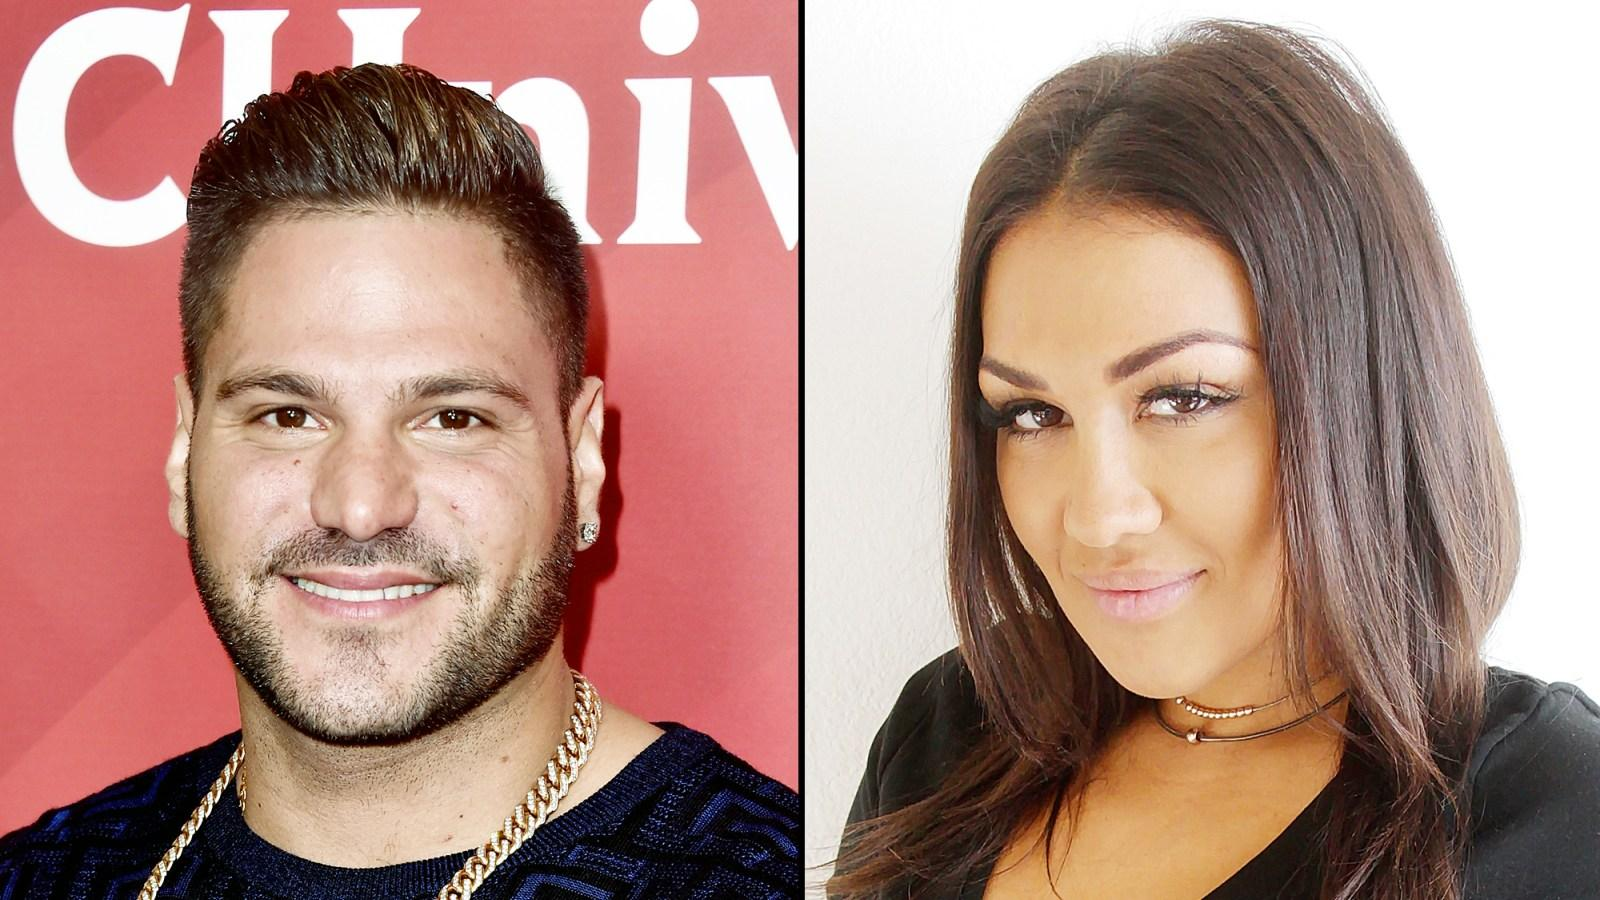 Ronnie Ortiz-Magro And Jen Harley Slam 'Fake News' And Prove They Spent Christmas Together!